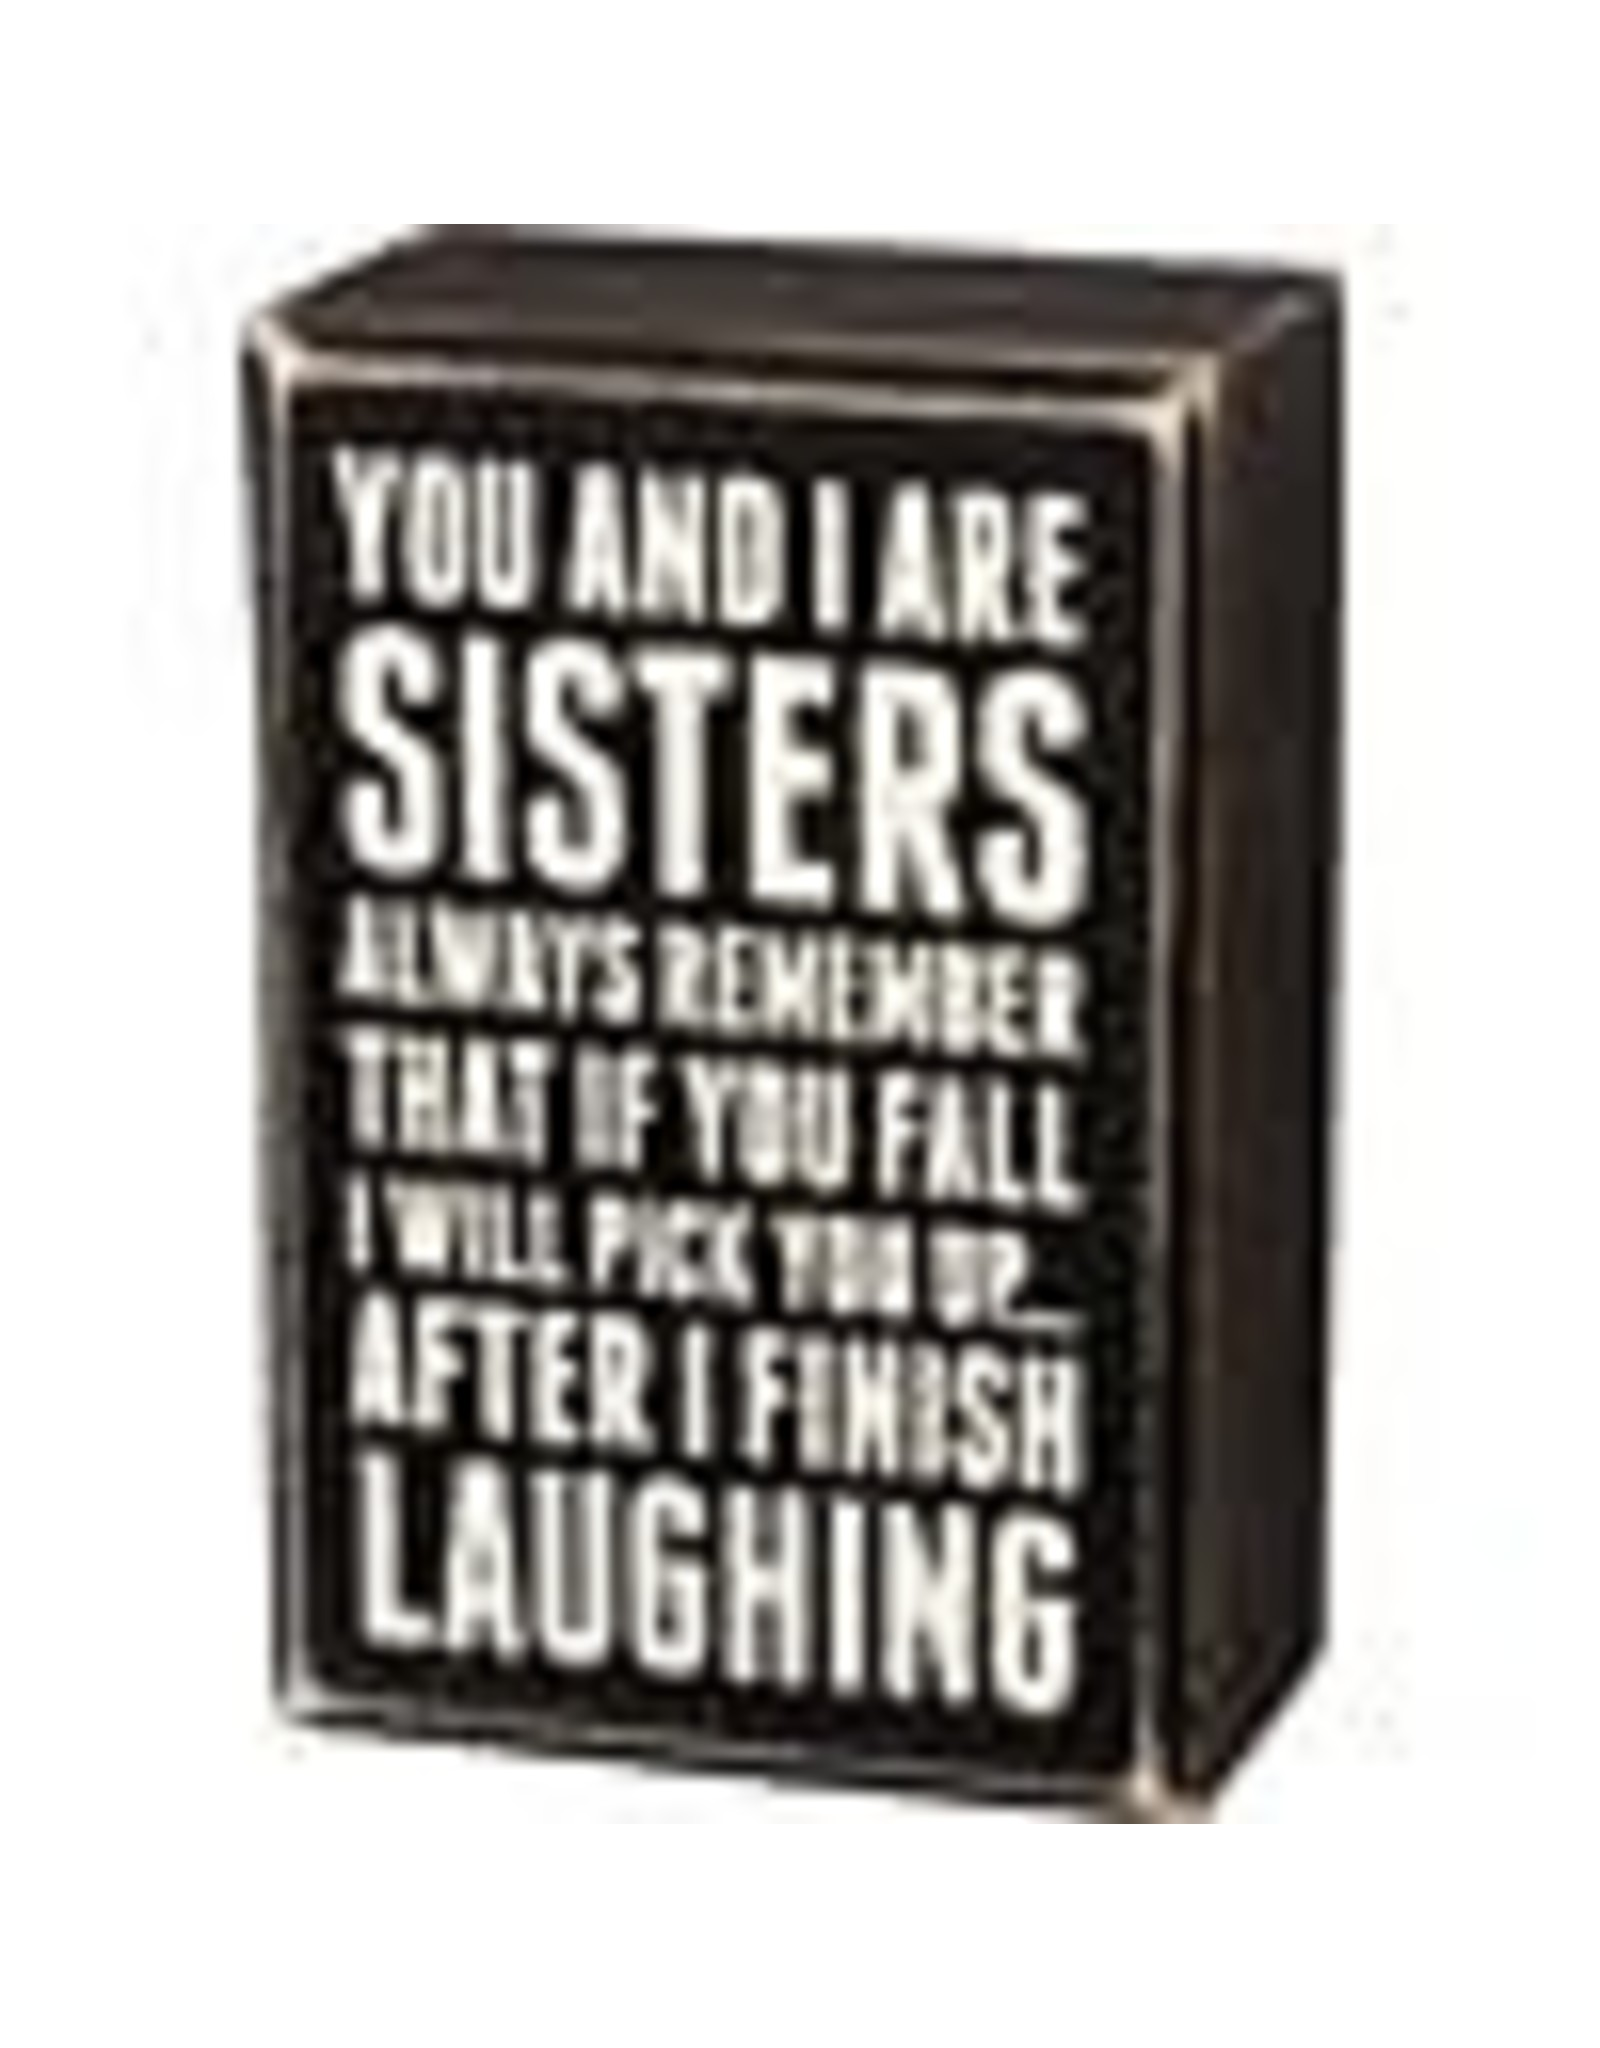 PRIMITIVES BY KATHY LOVED ONES BLOCK SIGNS SISTERS PICK YOU UP AFTER I FINISH LAUGHING